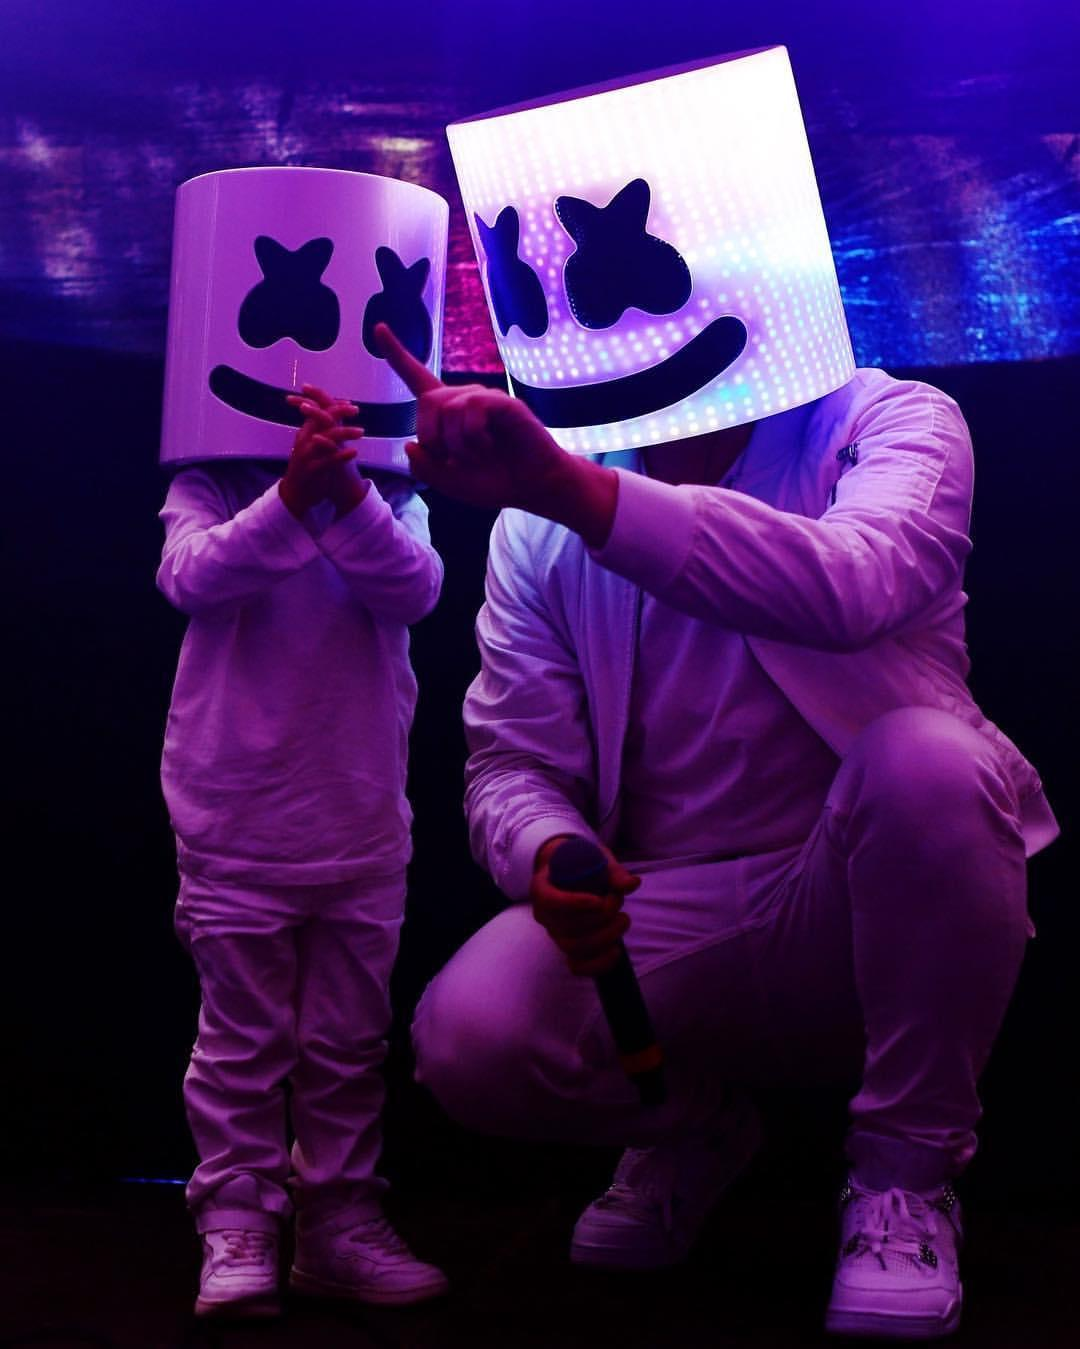 Dj Marshmello Wallpaper Hd For Android Apk Download